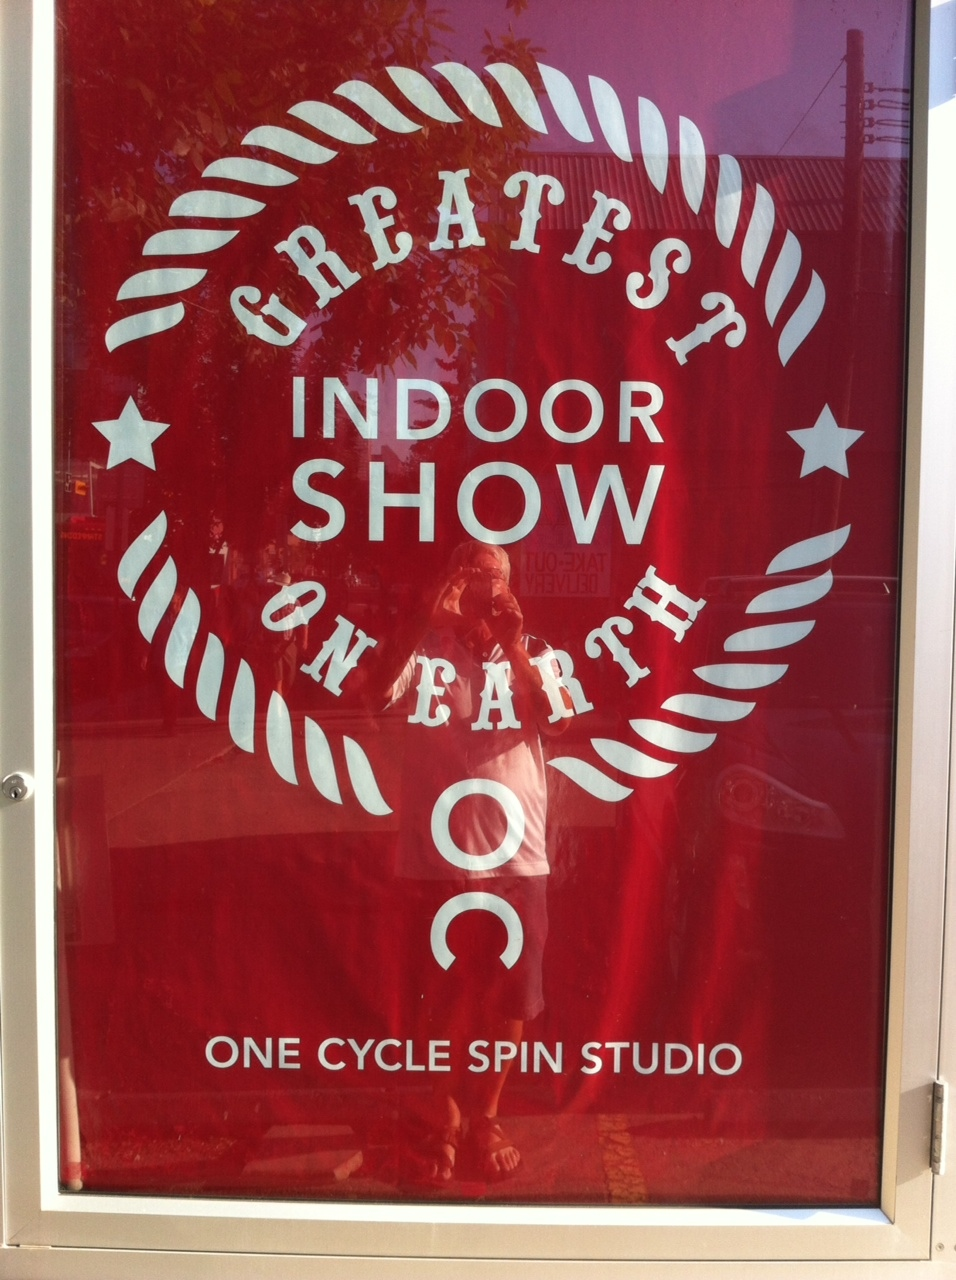 Fun play on the Calgary Stampede's brand.  I have done a couple of spin classes here and it is a bit like riding a bronc or maybe a bull - sore butt!